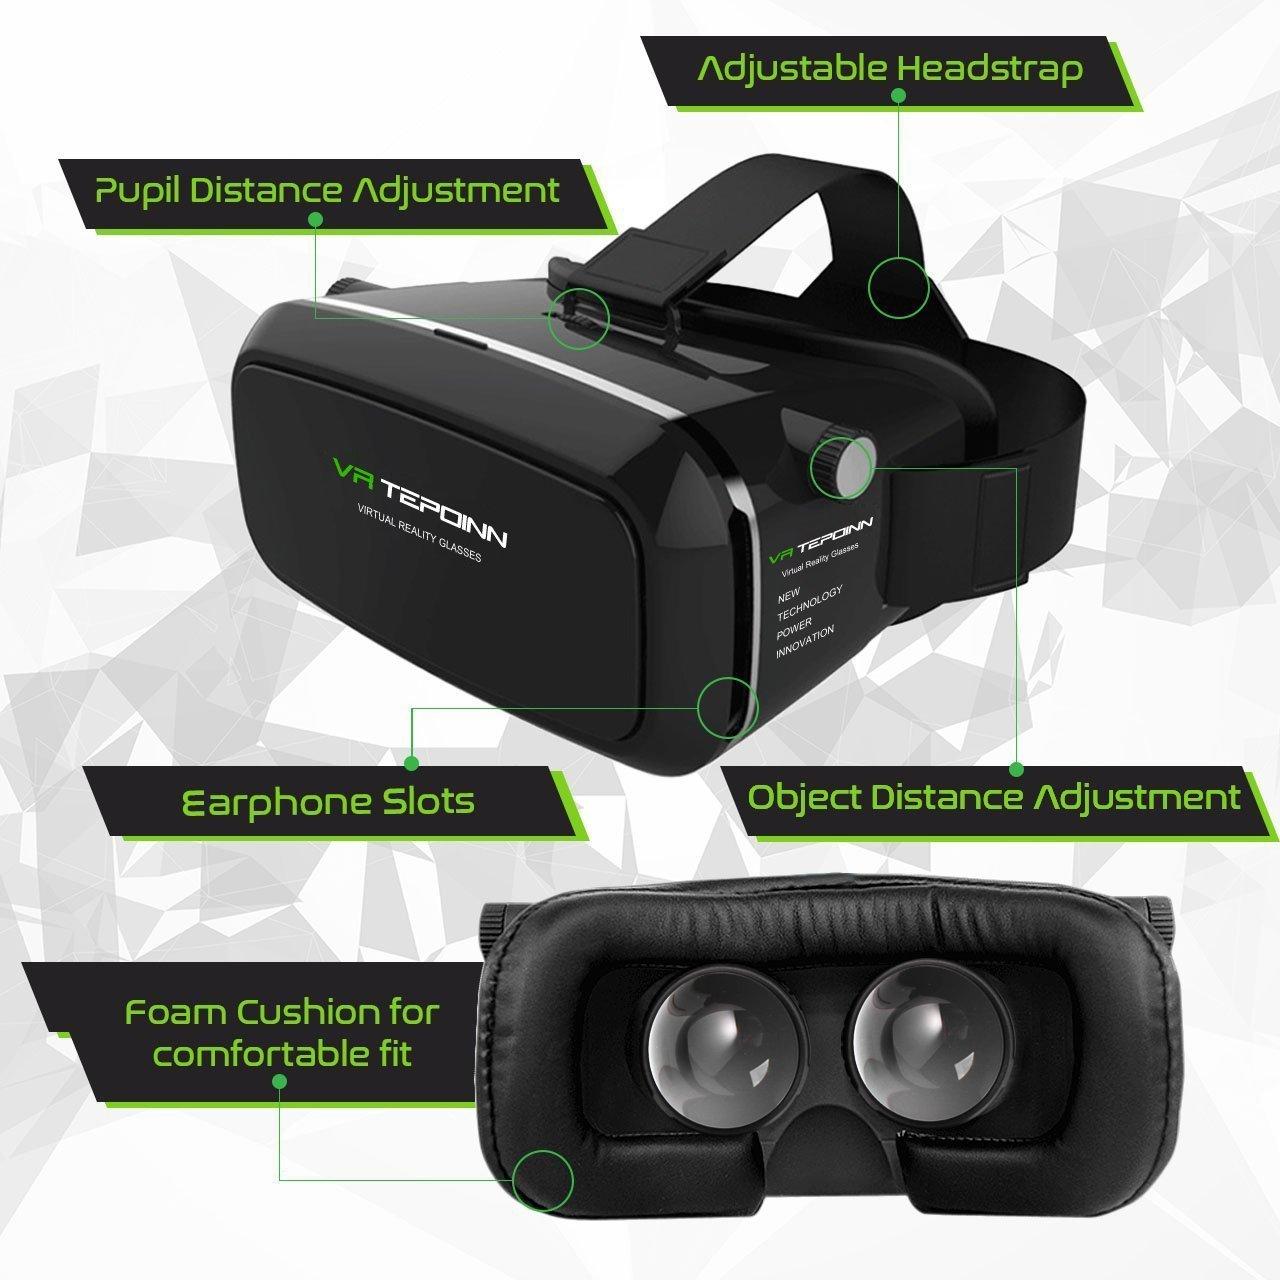 3D VR Glasses Headset with Adjustable Lens and Strap for 3.5-5.5-Inch Smart Phones (018)